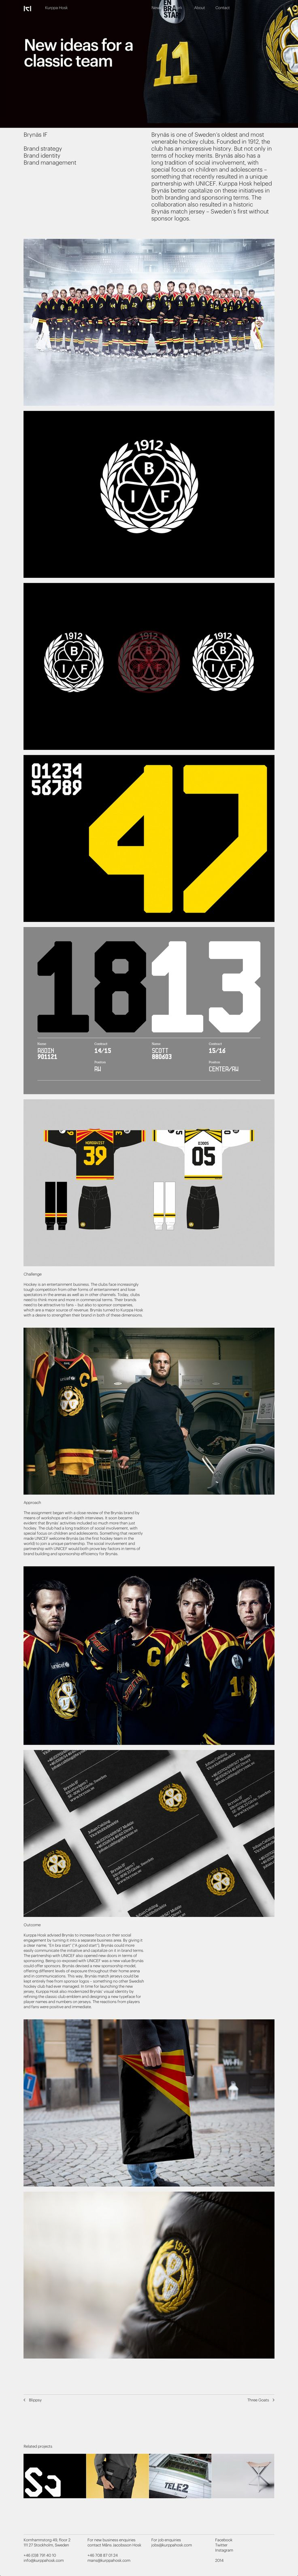 Brynäs is one of Sweden's oldest and most venerable hockey clubs. Brynäs has a long tradition of social involvement, with special focus on children and adolescents – something that recently resulted in a unique partnership with UNICEF. Kurppa Hosk helped Brynäs better capitalize on these initiatives in both branding and sponsoring terms. The collaboration also resulted in a historic Brynäs match jersey – Sweden's first without sponsor logos. #Brandstrategy #Brandidentity #Brandmanagement